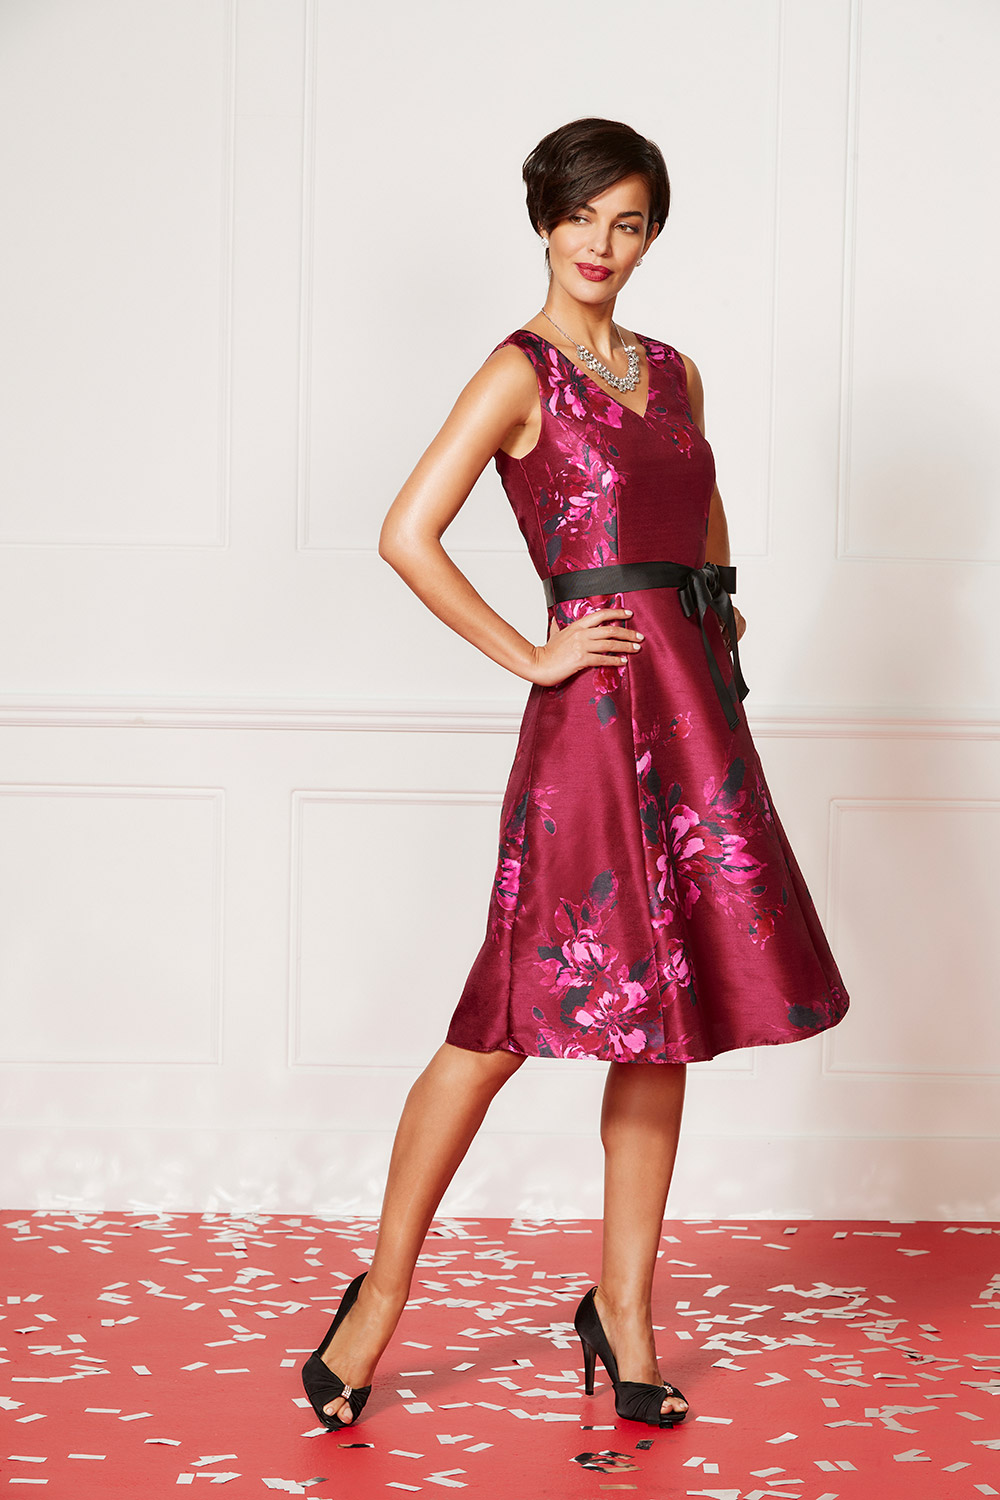 a2ce53bf433 Red Floral Print Prom Dresses - Gomes Weine AG